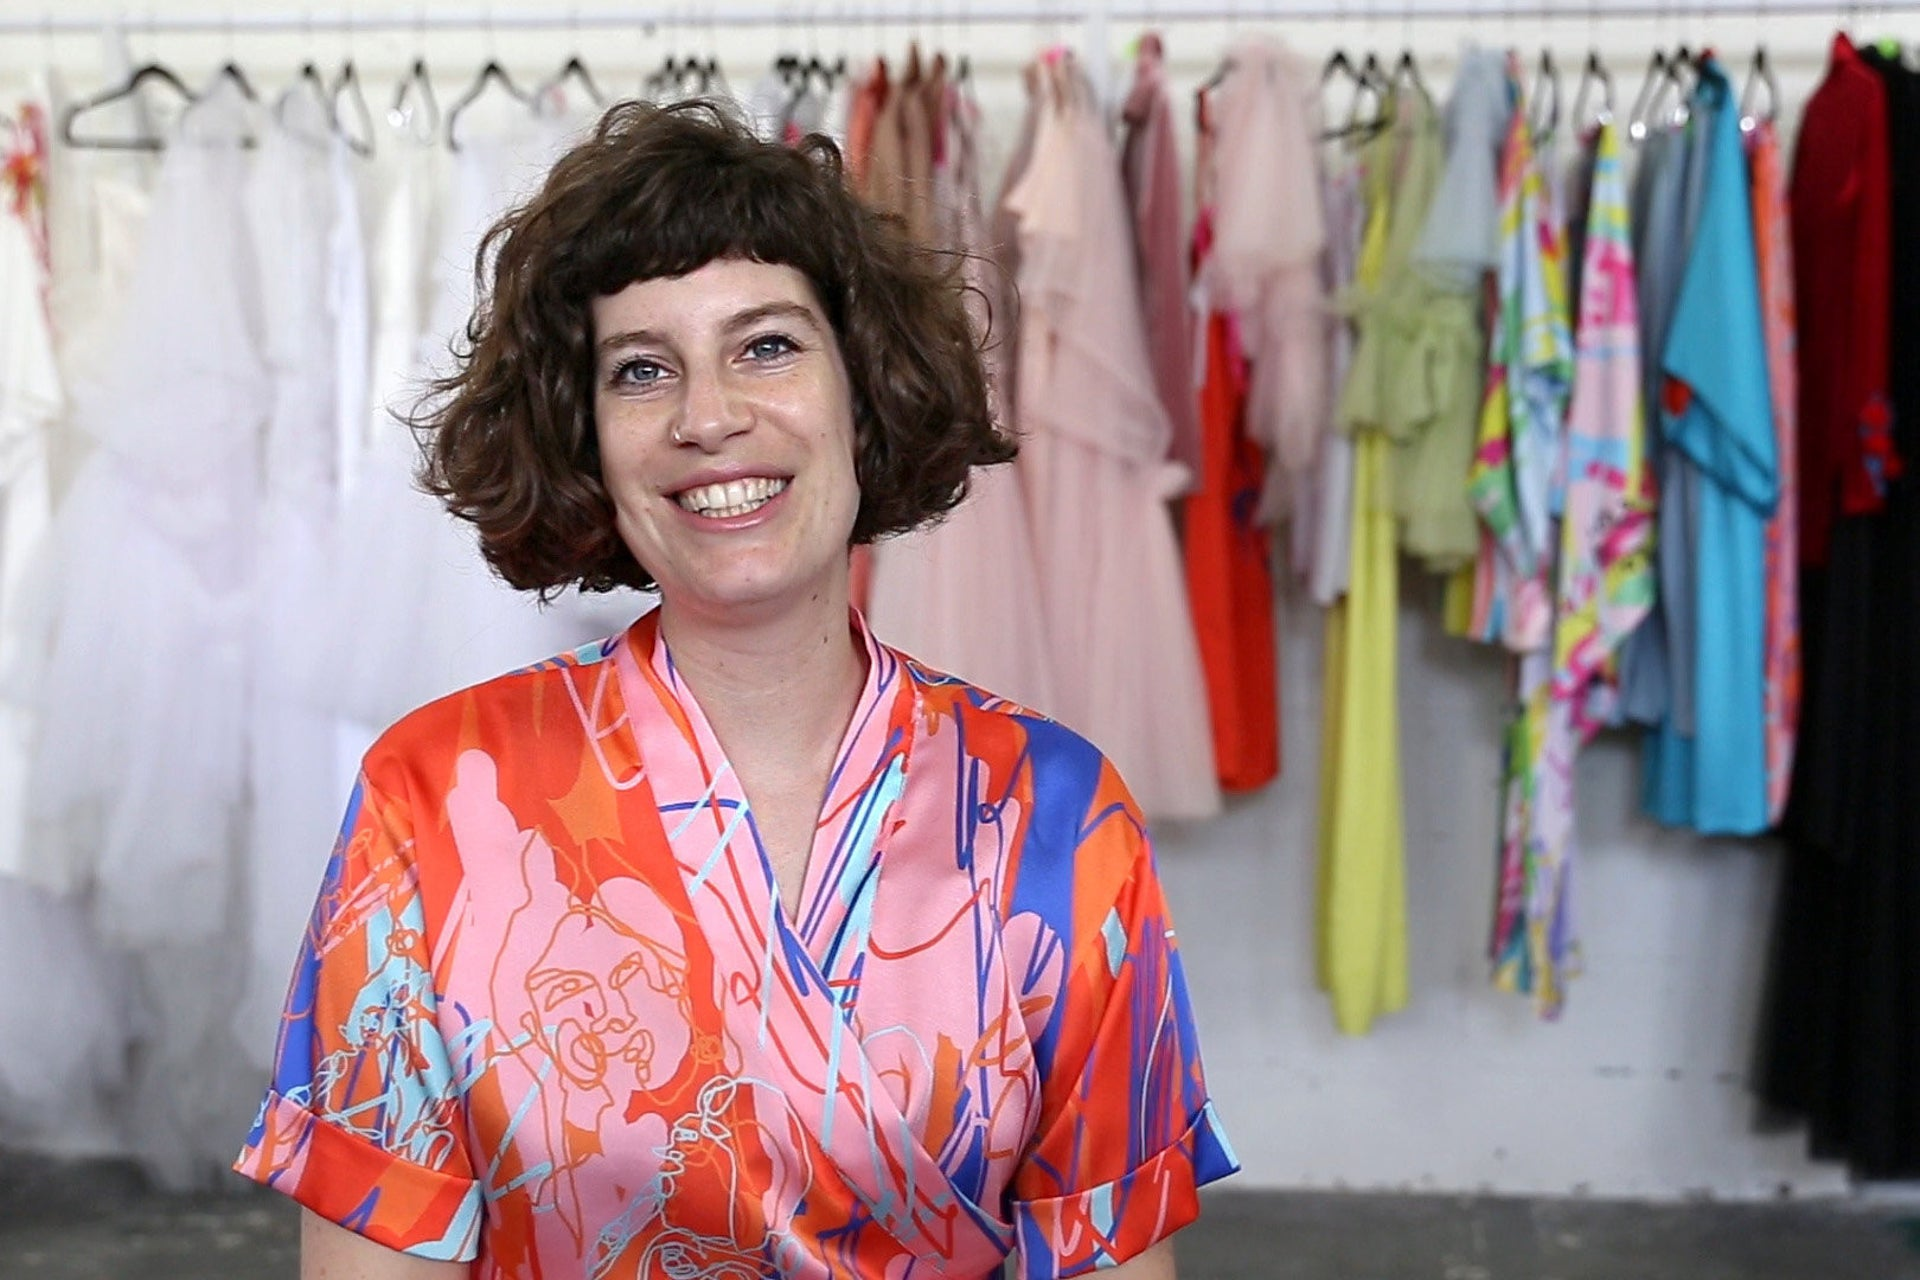 Israeli designer Shahar Avnet wearing a multicolored kimono and smiling, in her south Tel Aviv studio with a rack of her designs behind her.